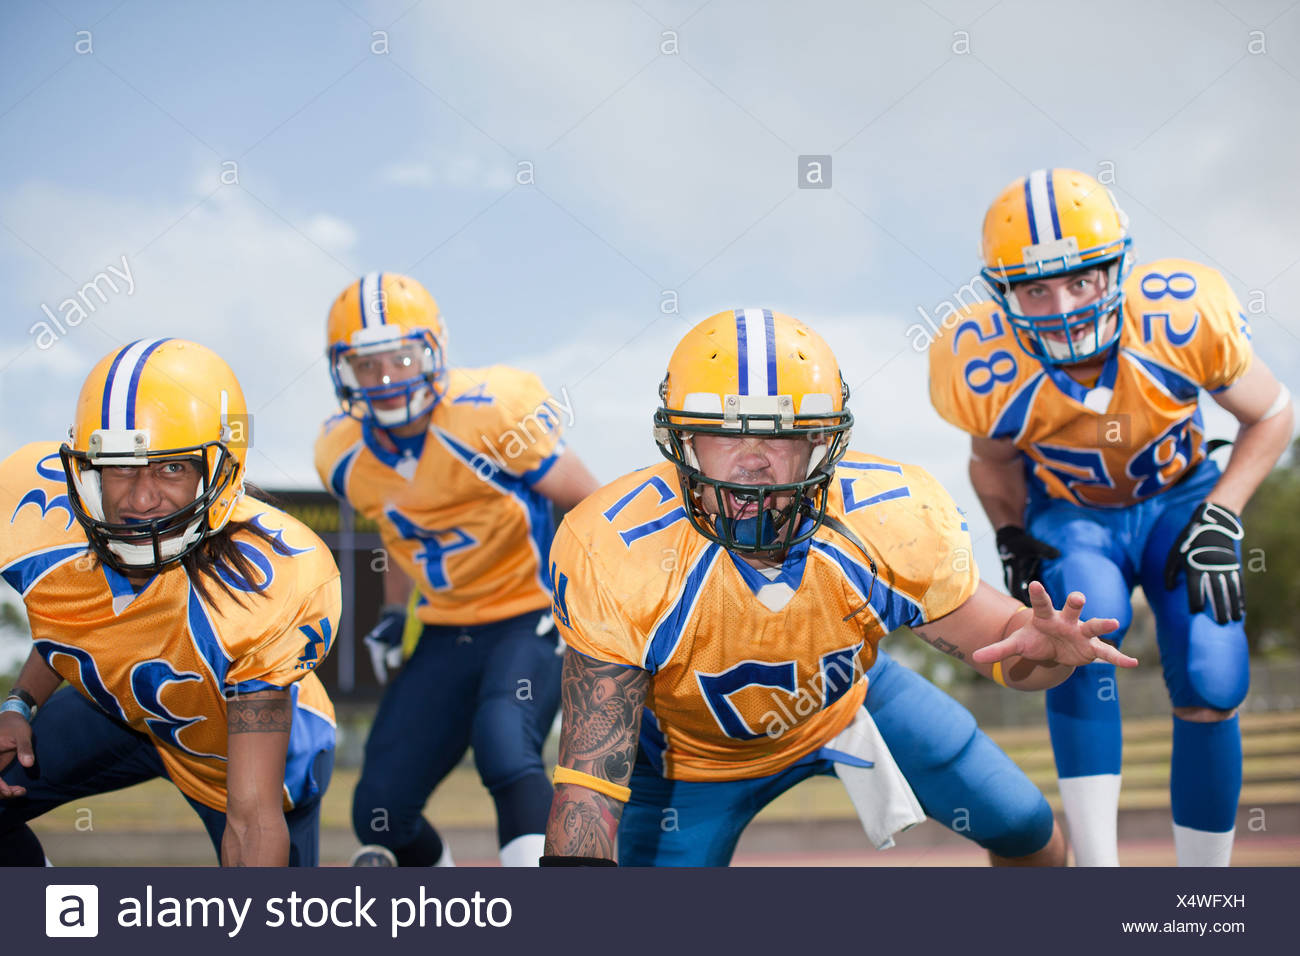 Intimidating football players - Stock Image